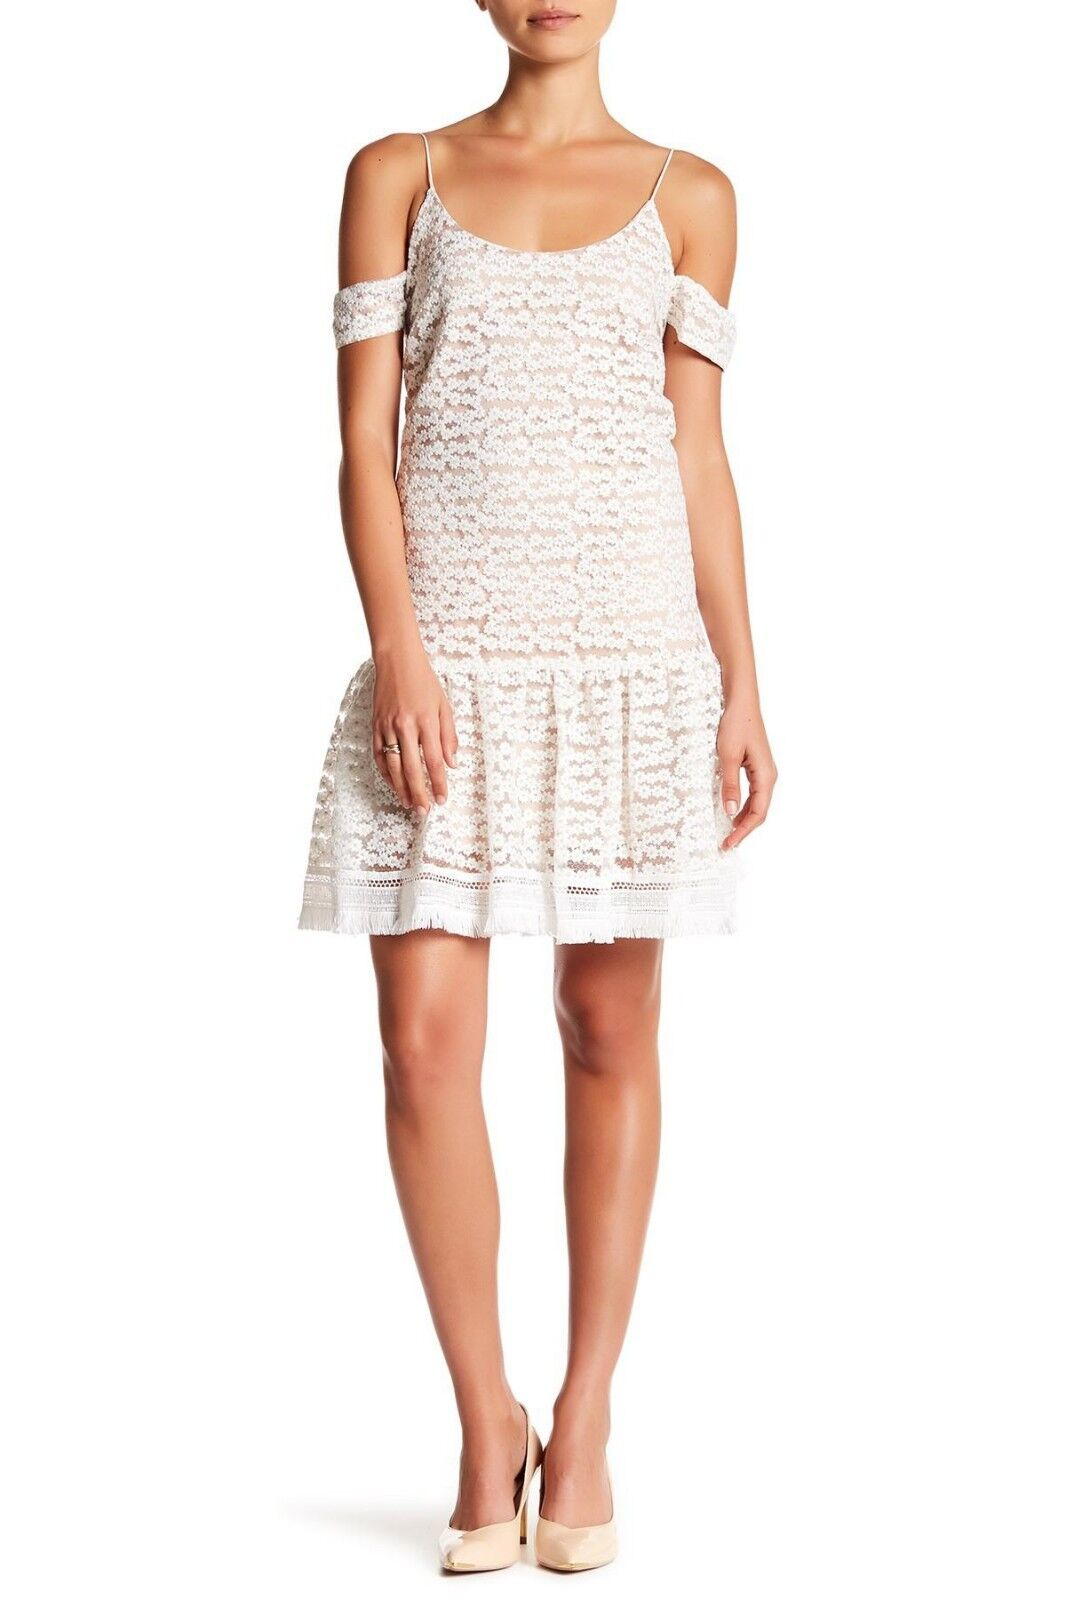 NEW Nordstrom Nicole Miller Womens Size S Floral Lace Cold Shoulder Dress NWT